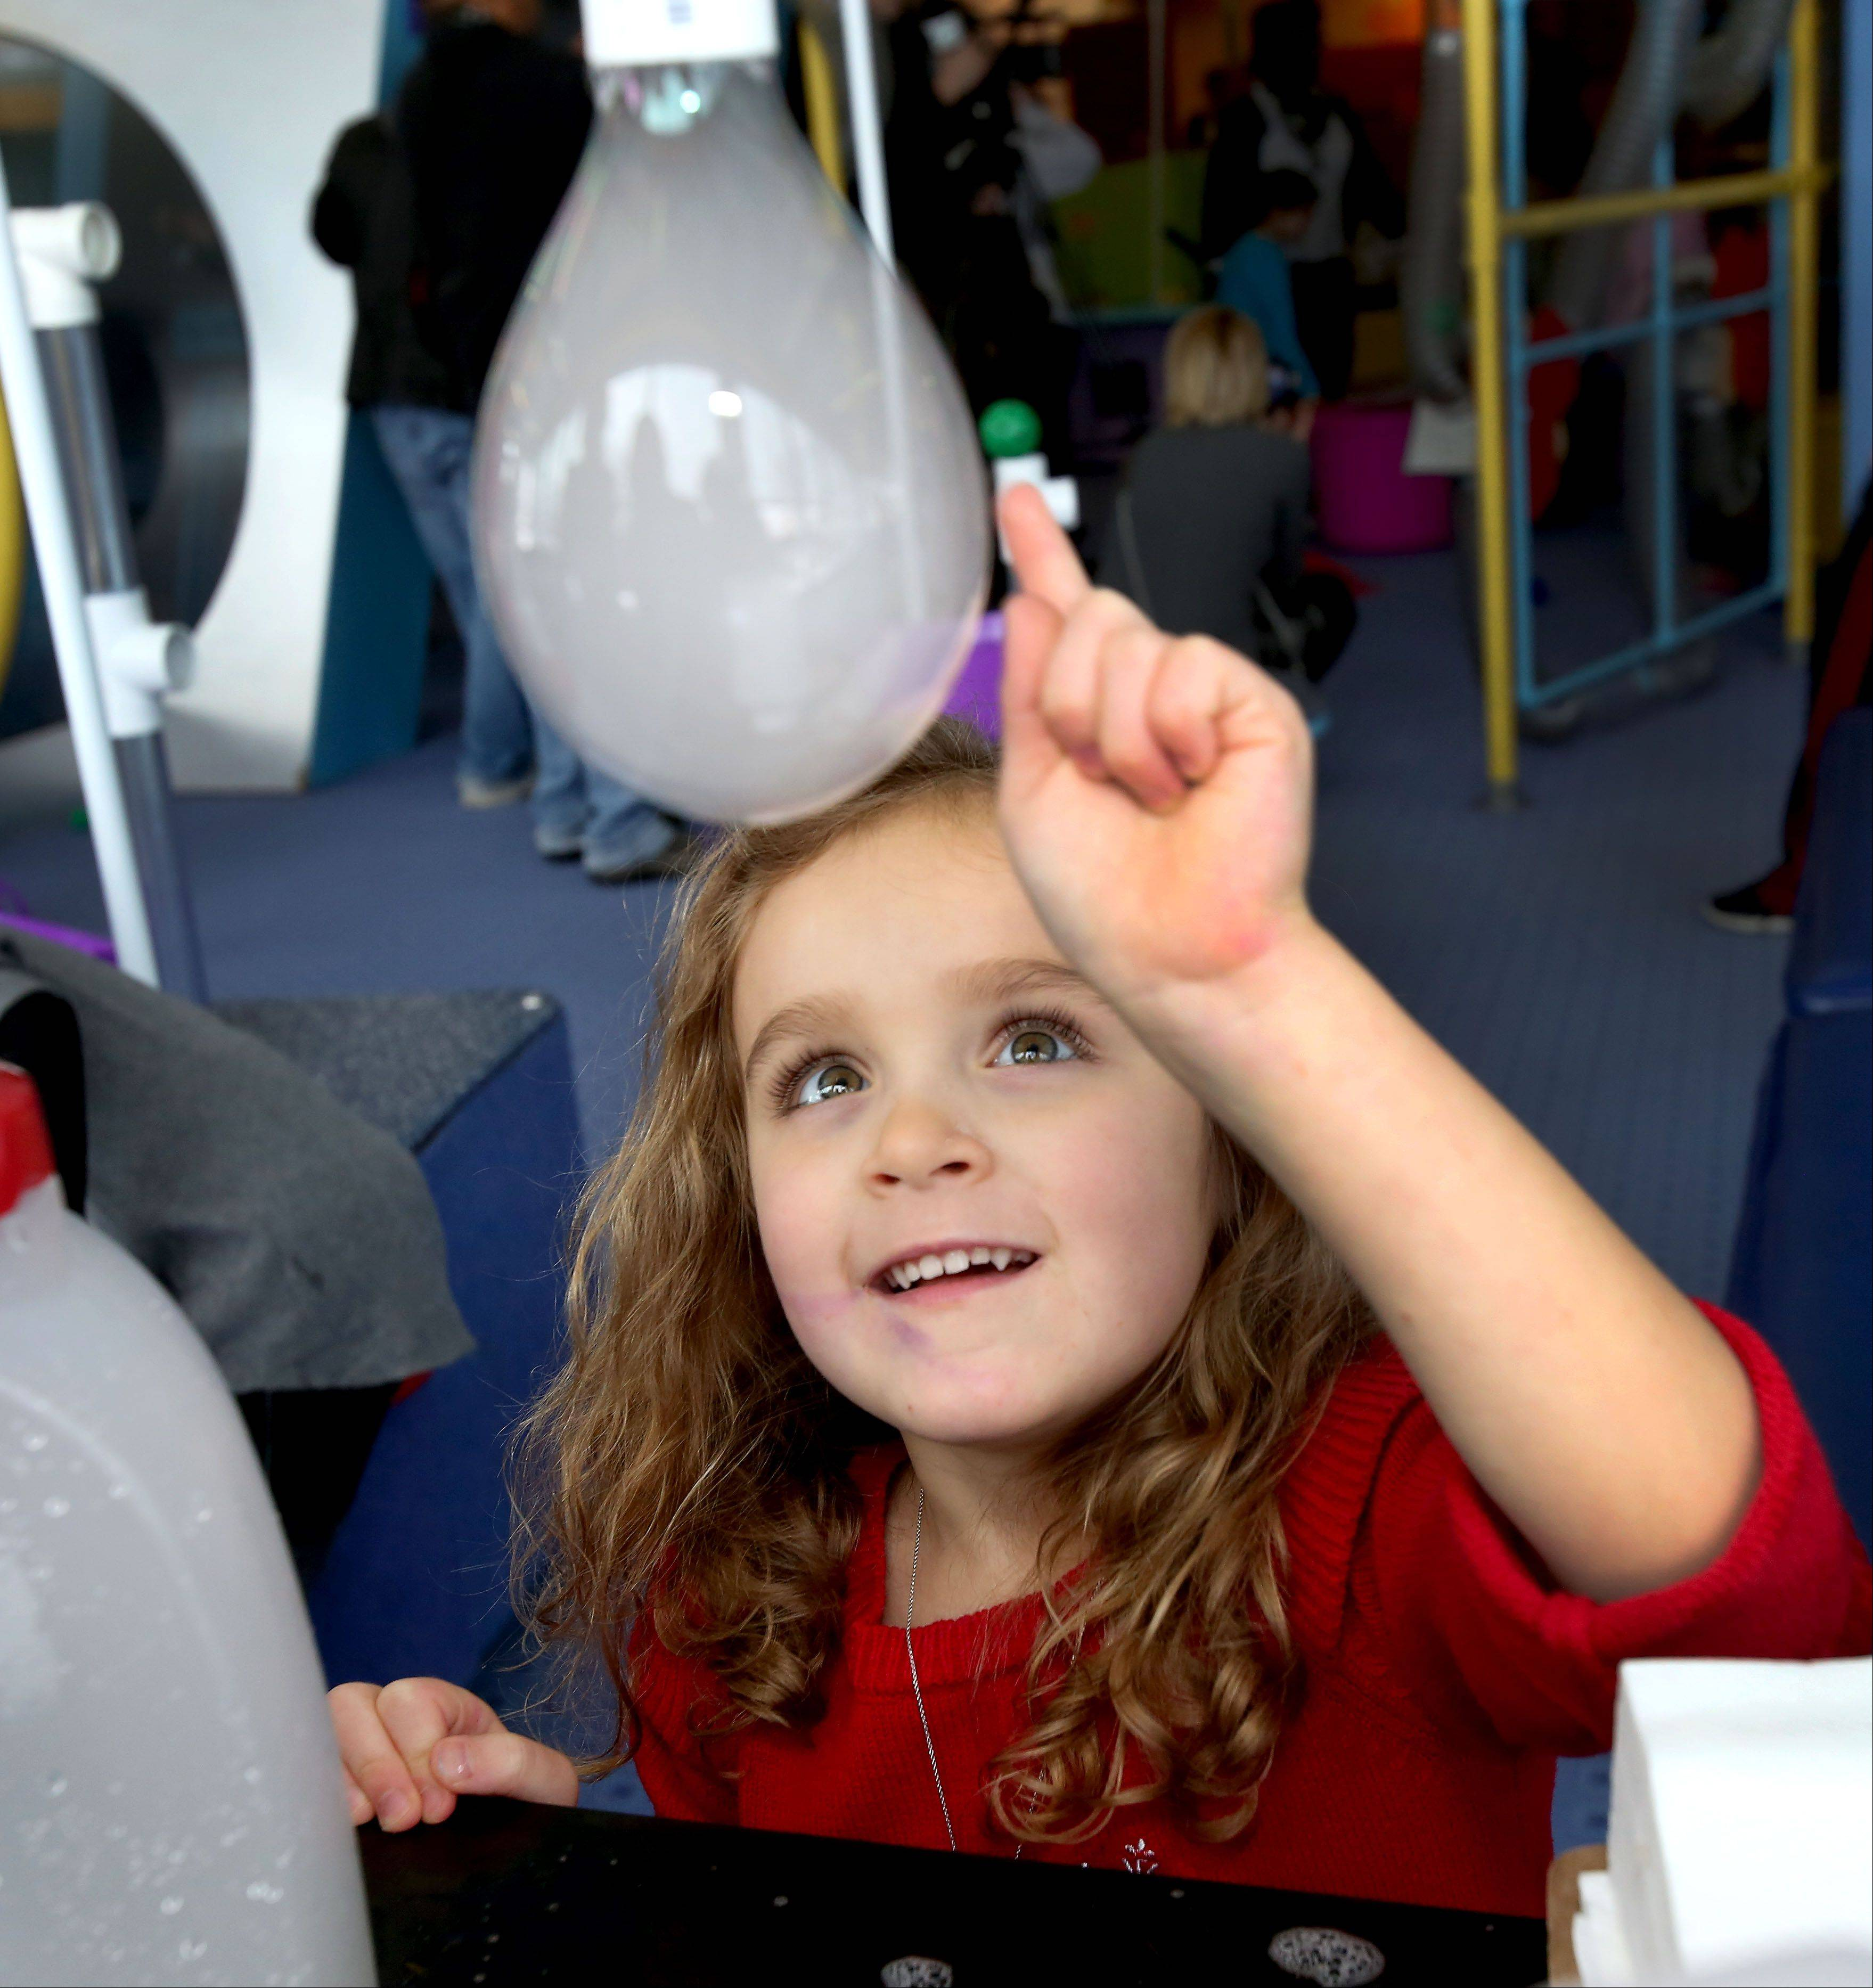 Addison Robbins, 4, of Elmhurst, gets ready to pop a dry ice bubble, just one of the activities available Tuesday at the 12th annual Bubble Bash at the DuPage Children's Museum in Naperville.